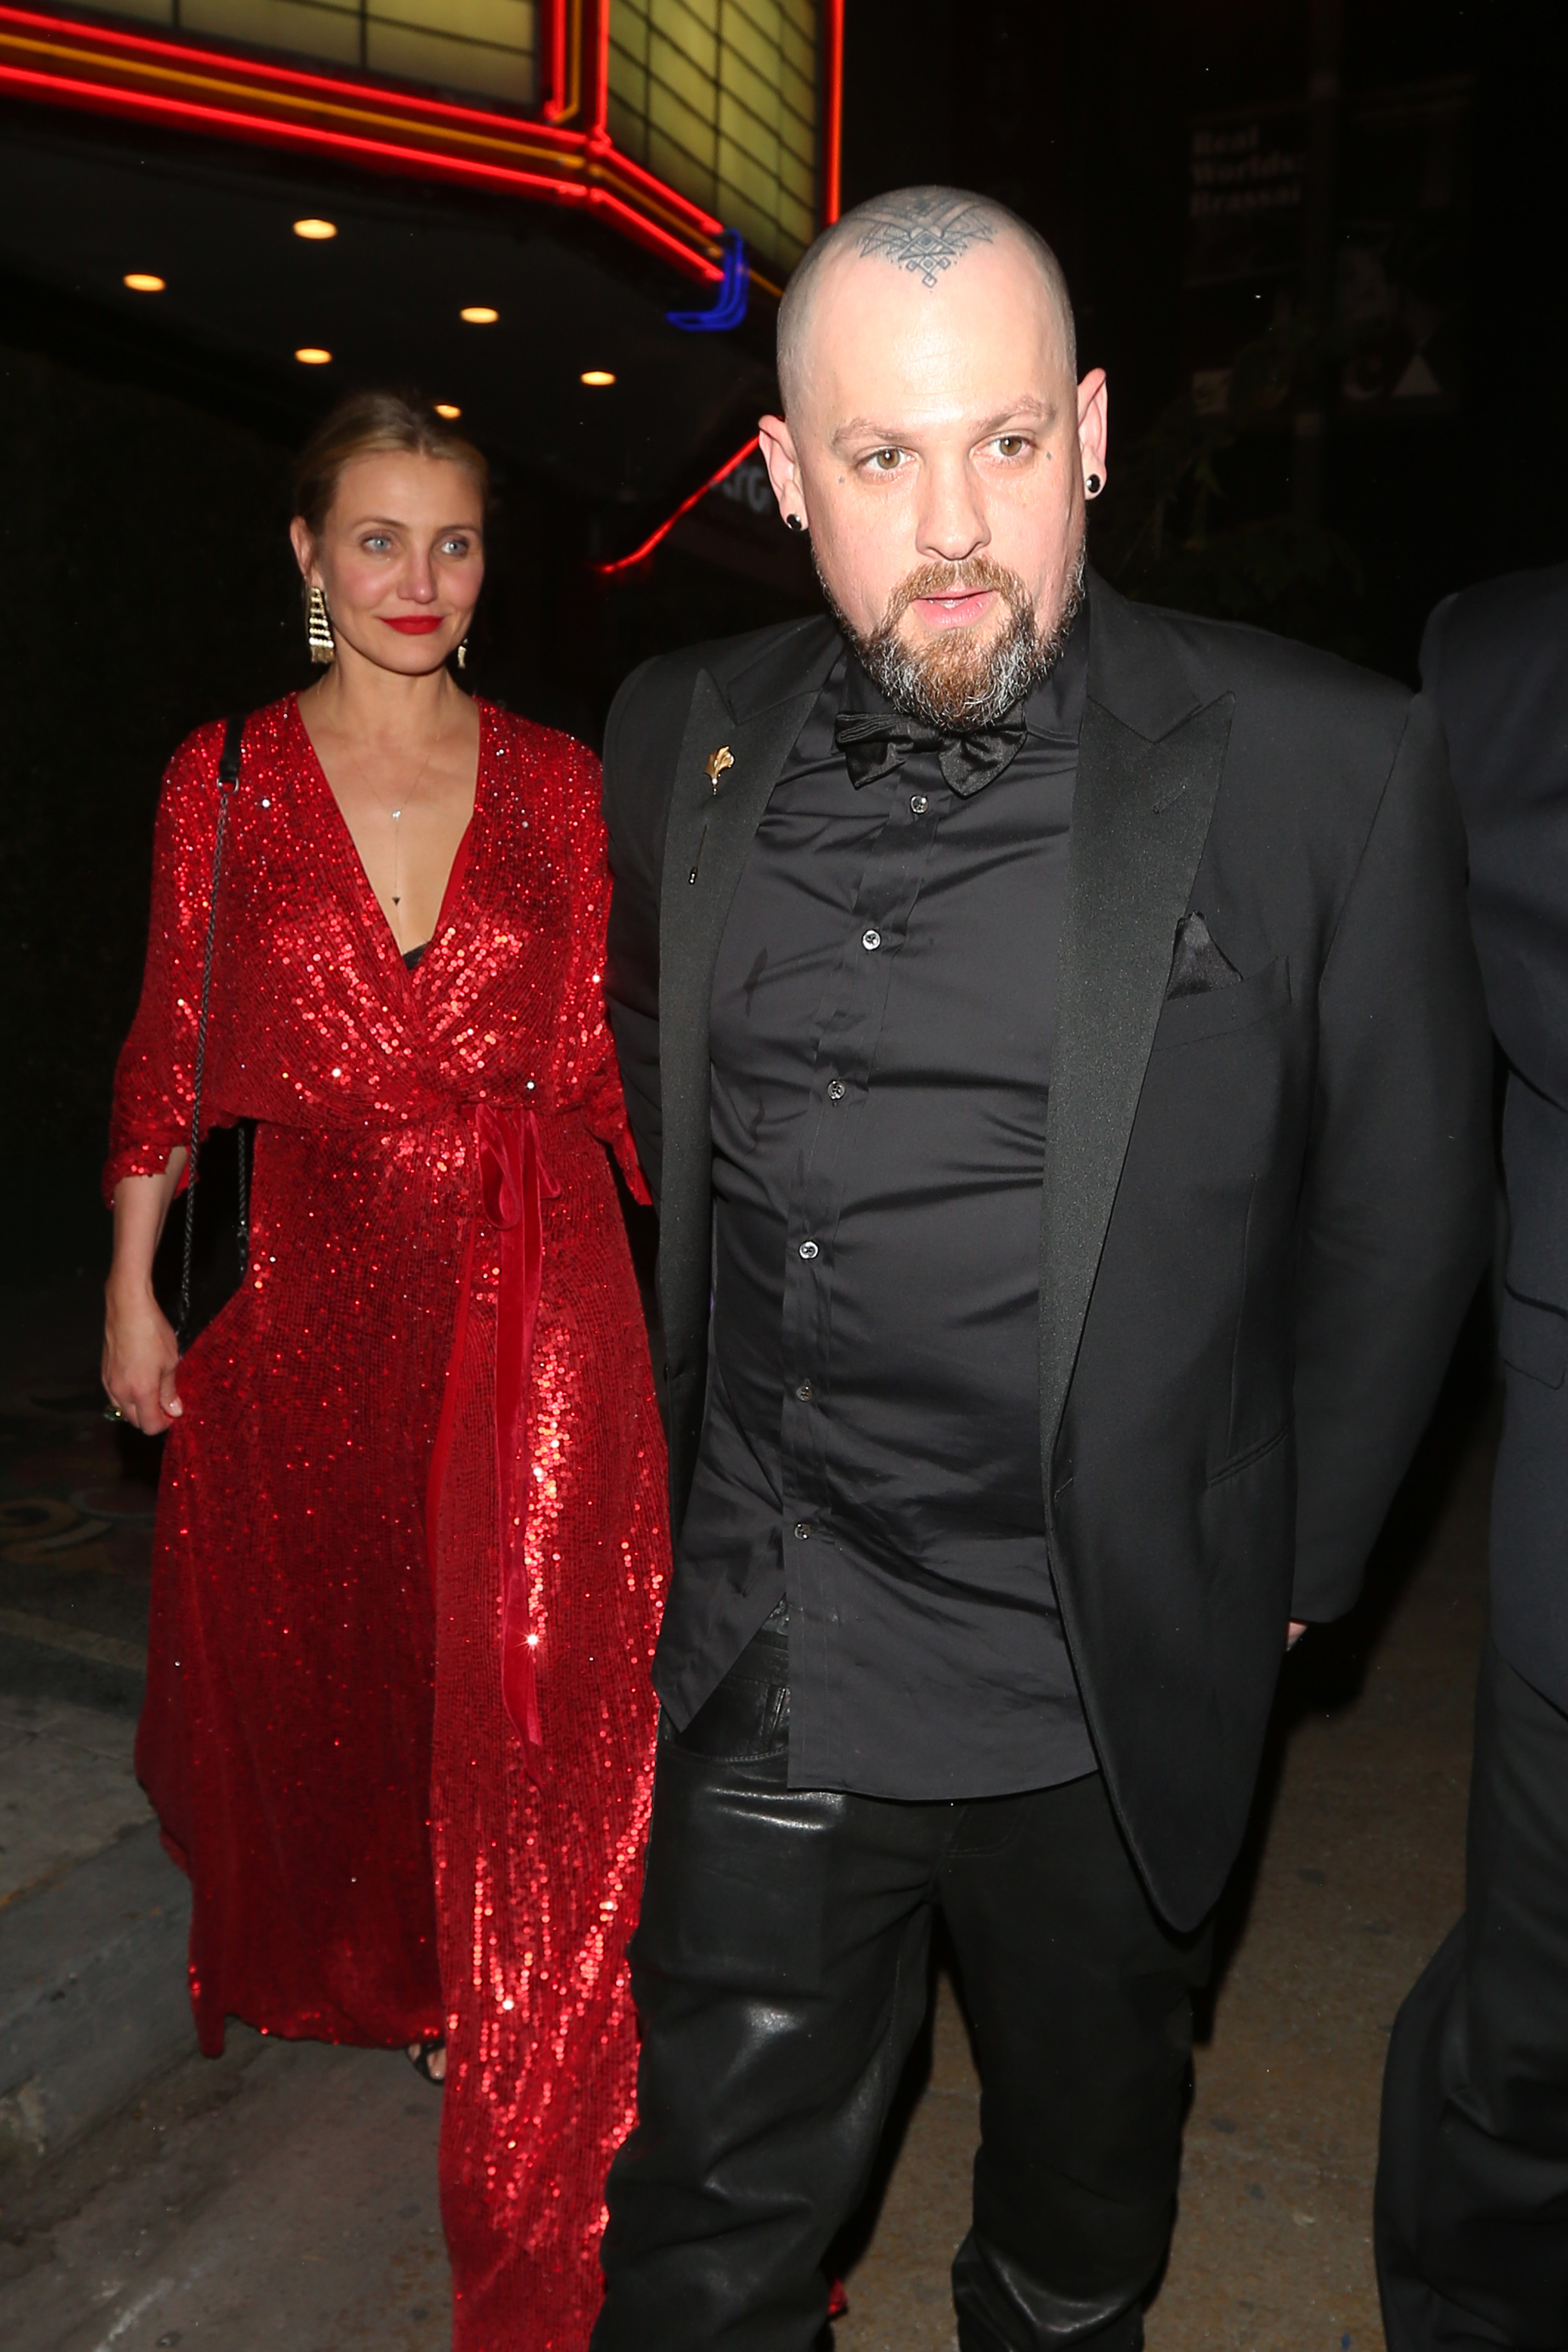 Cameron Diaz and husband Benji Madden arrive at Gwyneth Paltrow and Brad Falchuk's engagement party at the Los Angeles Theater in downtown L.A. on April 14, 2018.